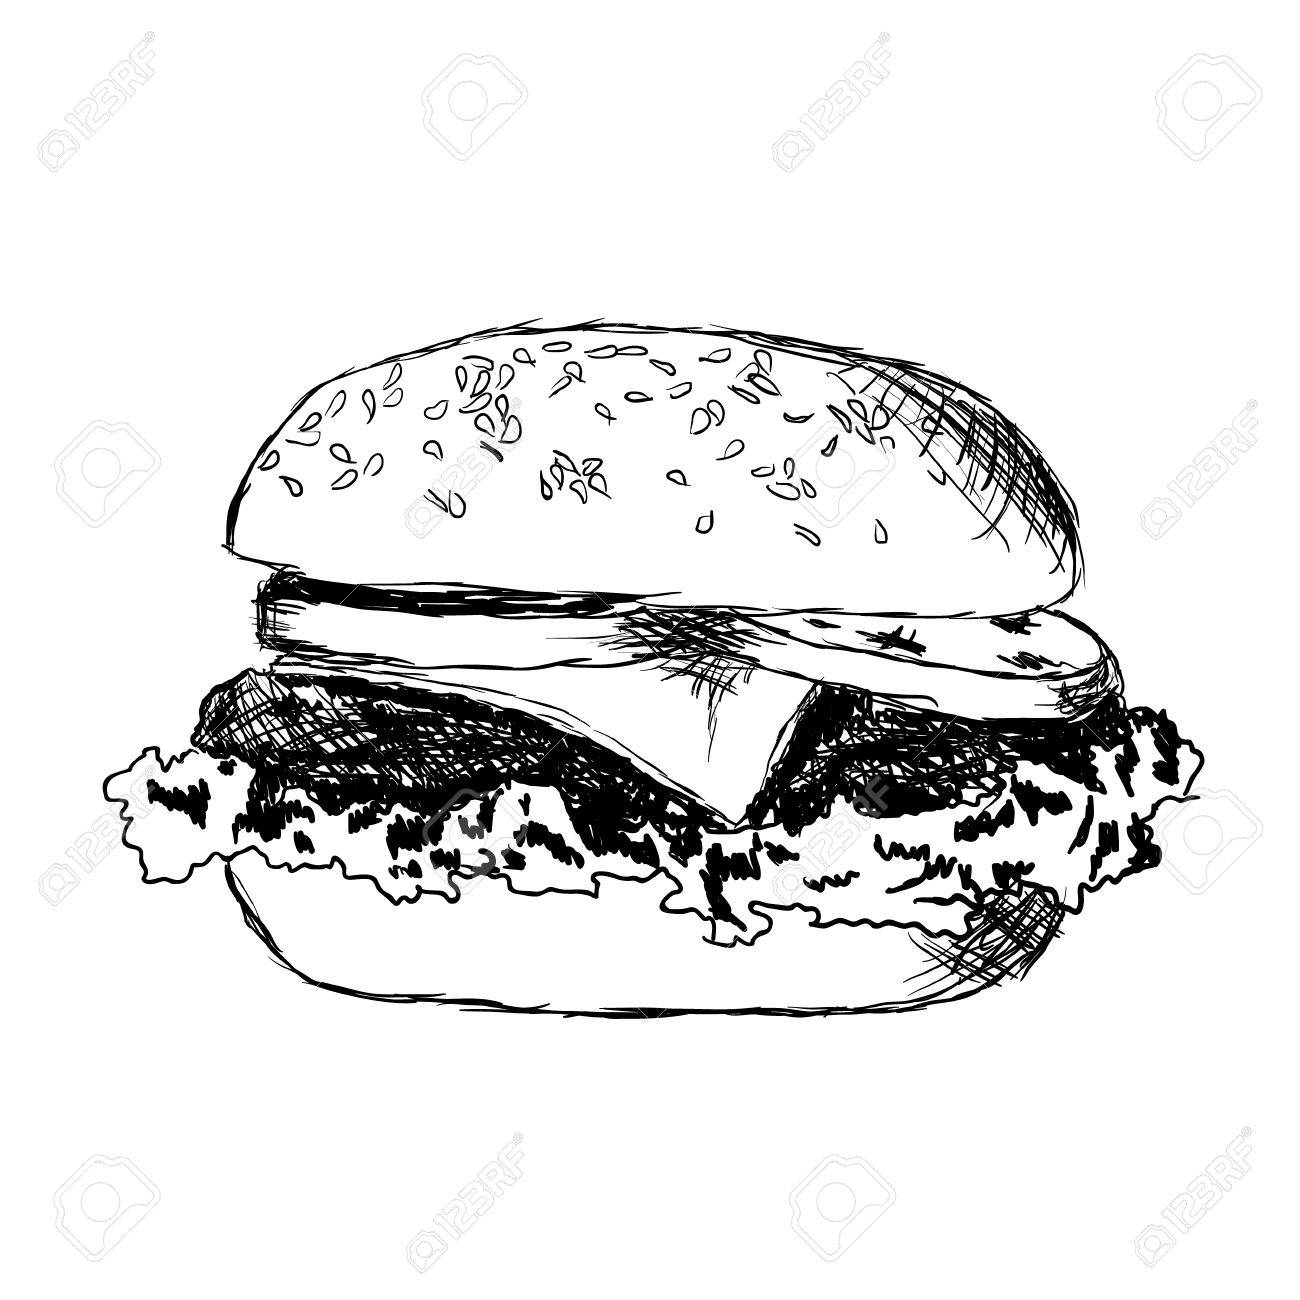 hamburger with meat, lettuce, cheese and tomato Stock Vector - 12377558